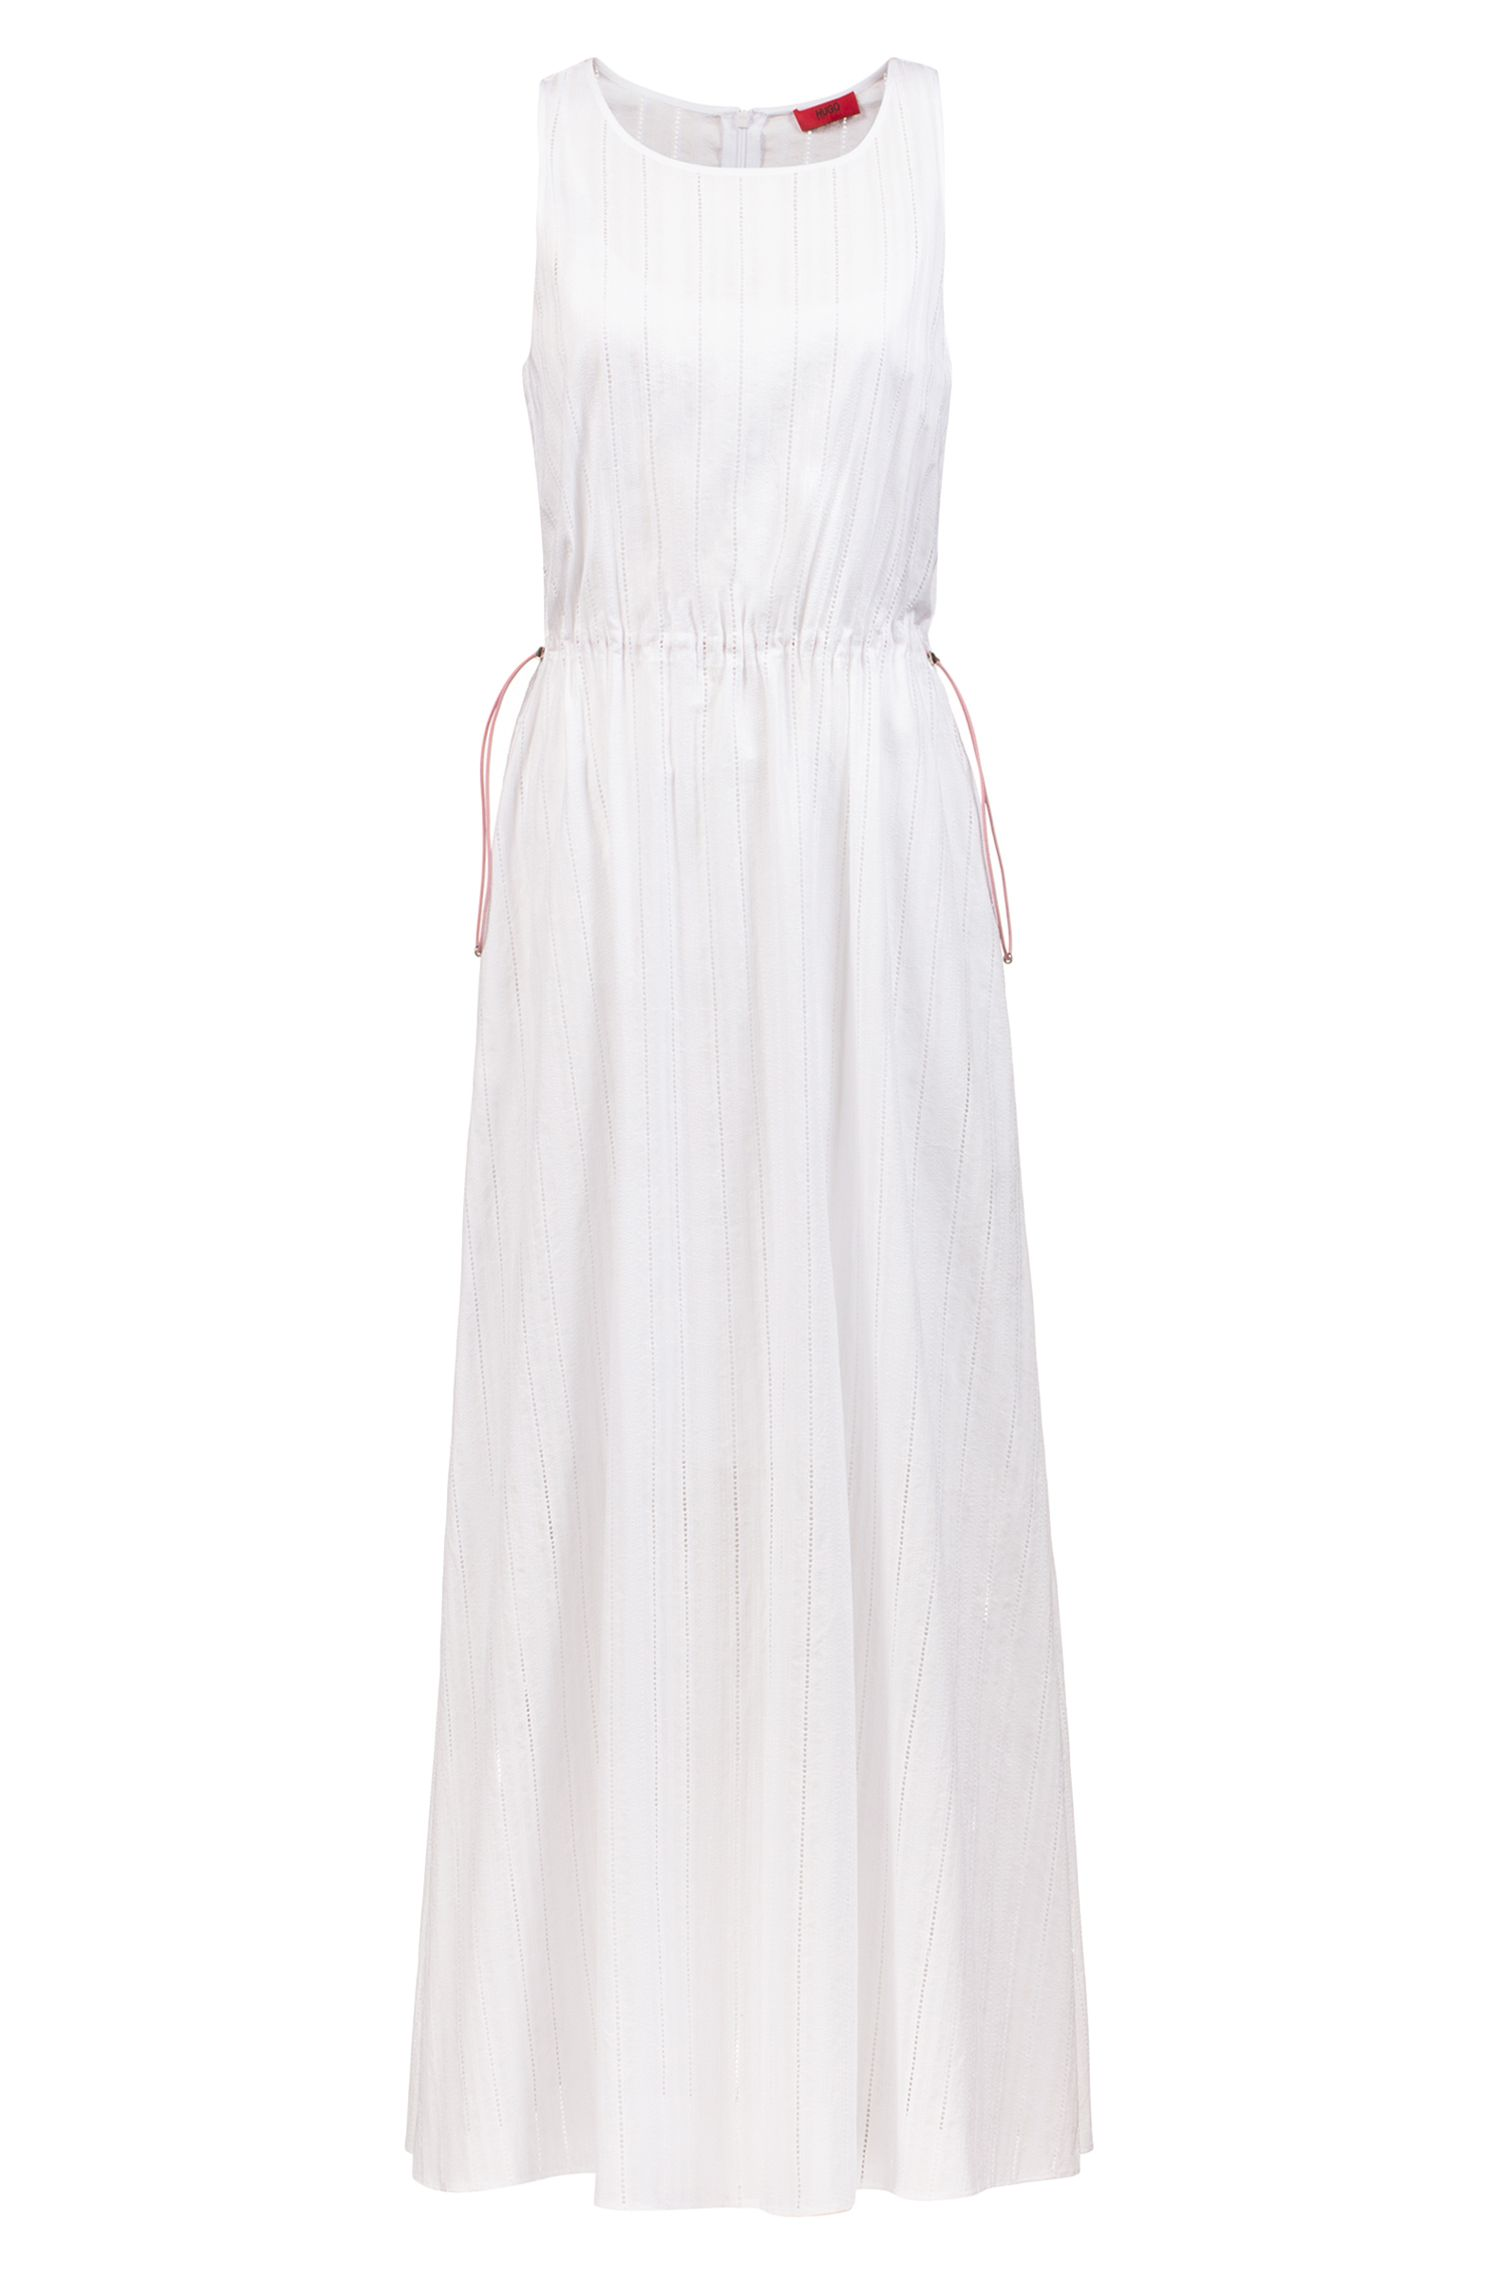 Embroidered-lace maxi dress with drawstring waist, Patterned